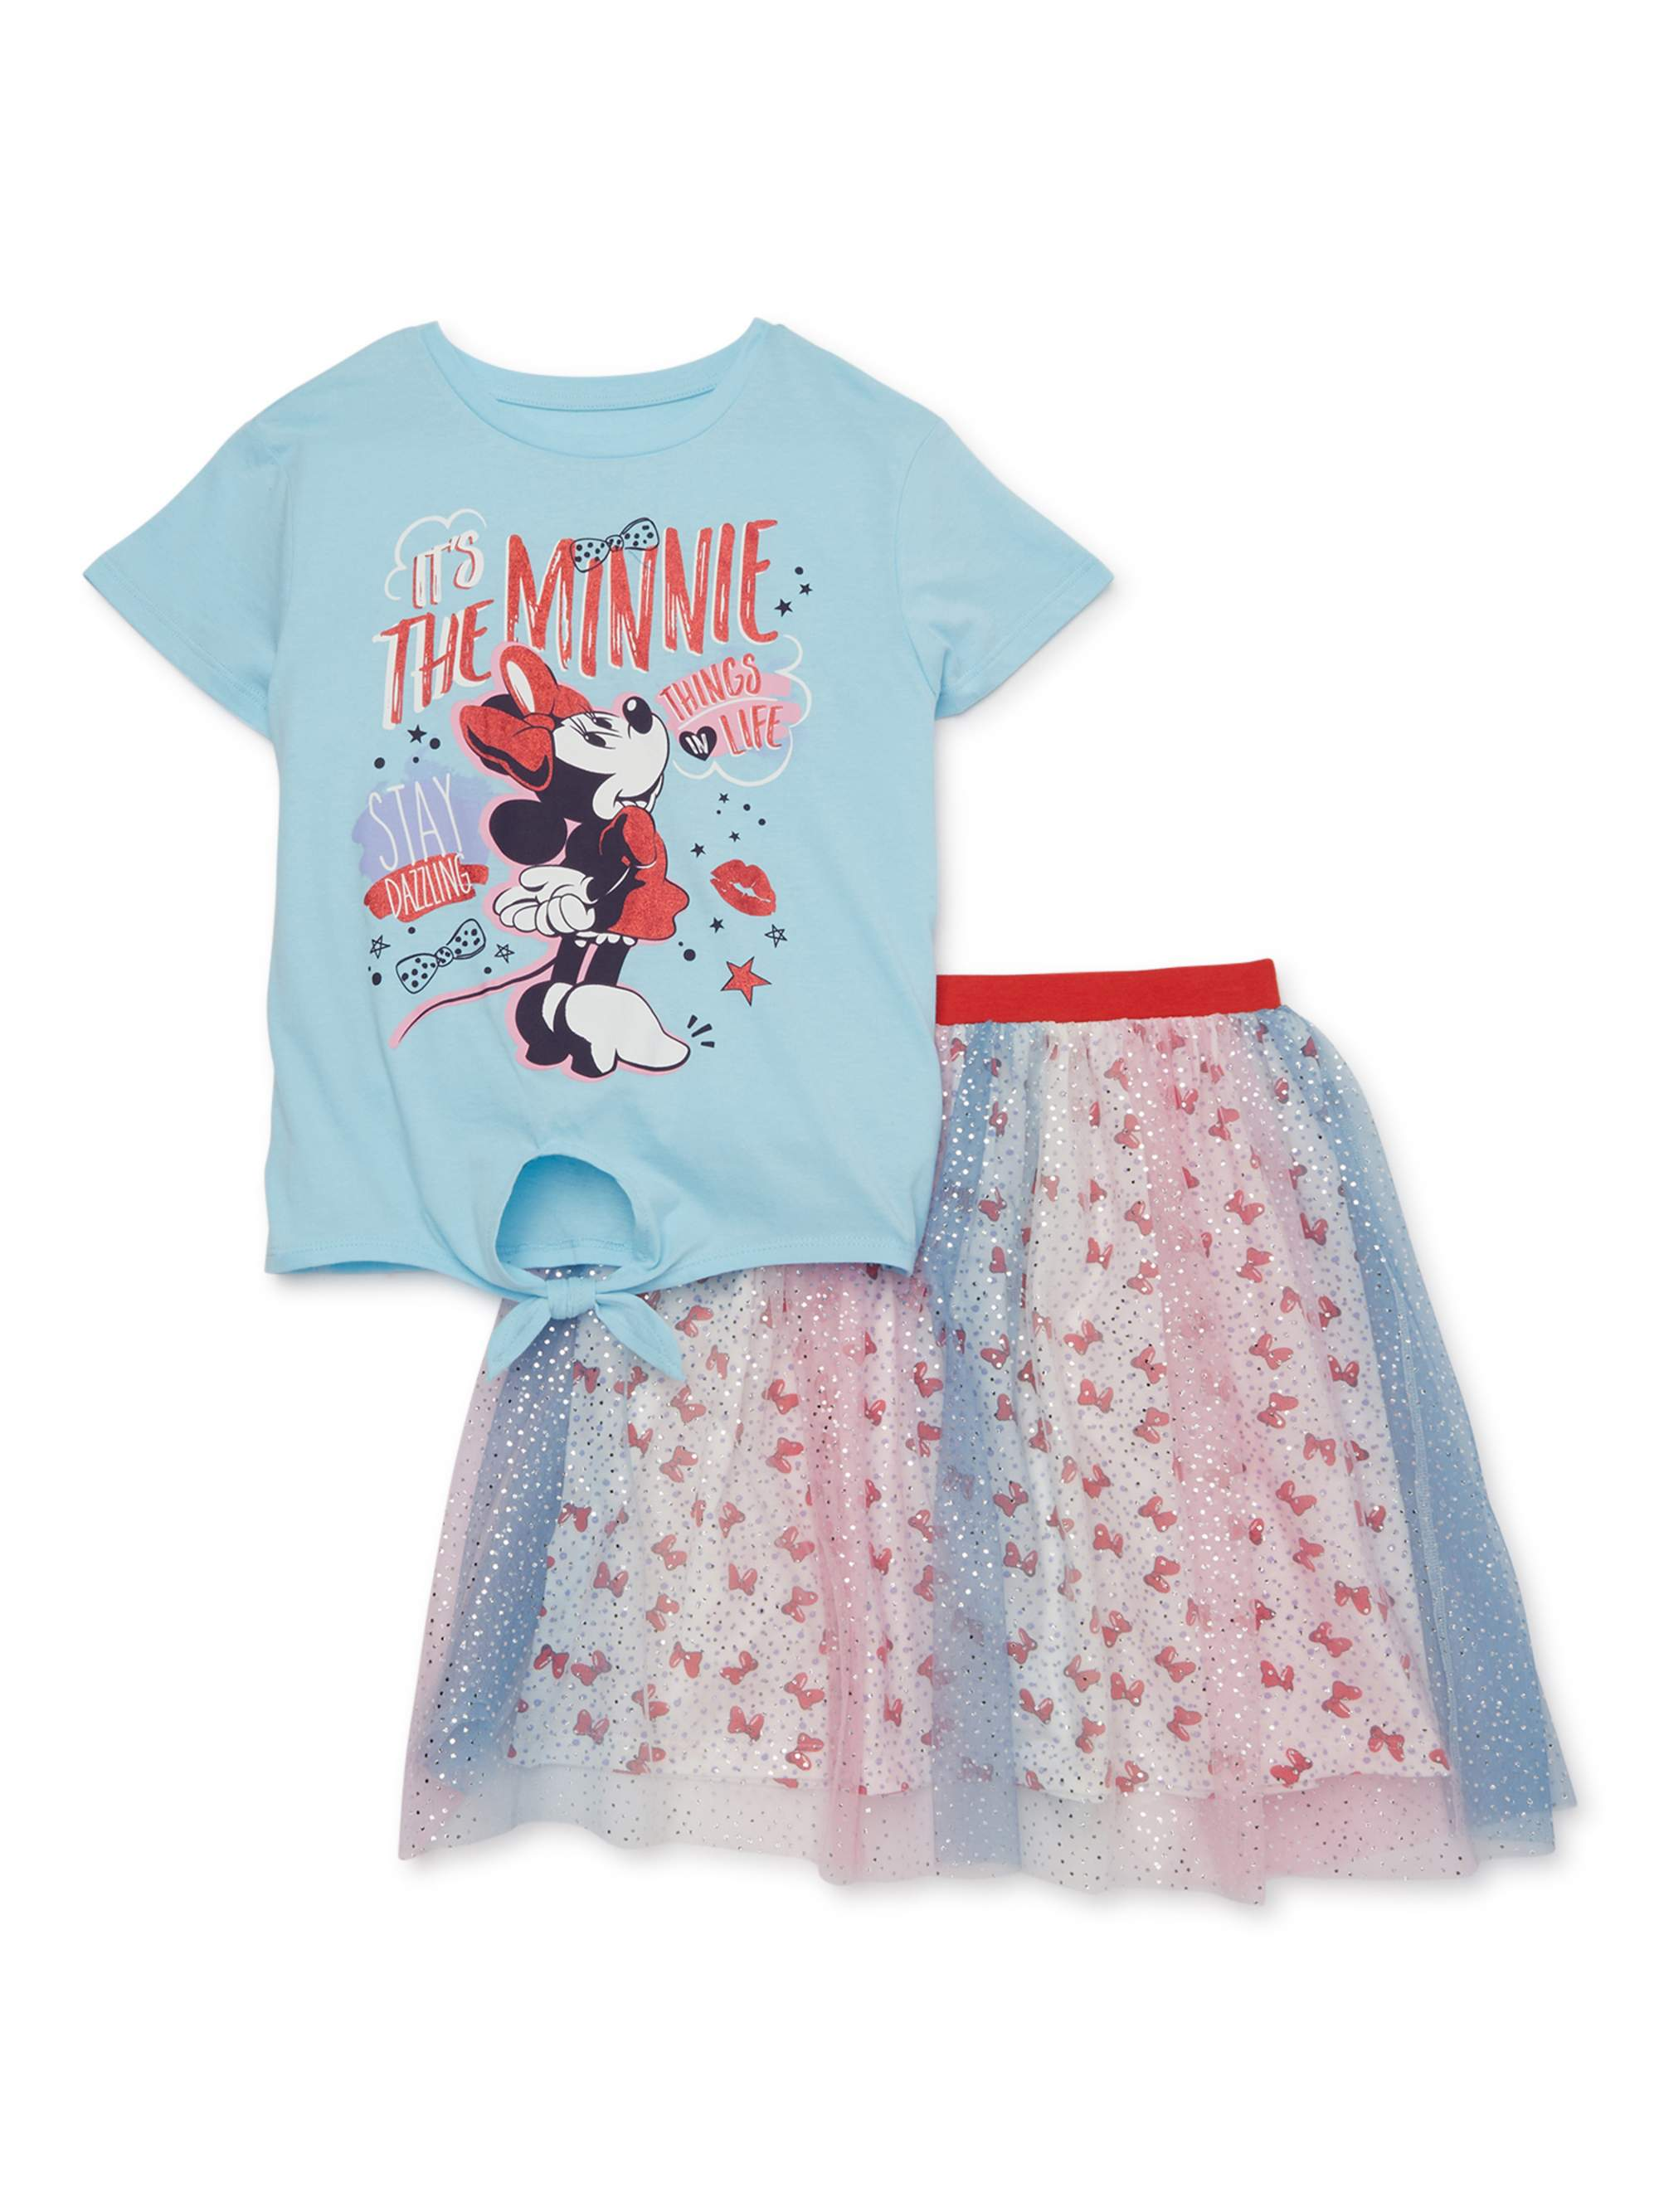 Hot Pink Polka Dot Bow Mom of the birthday girl Minnie Mouse T Shirt all sizes